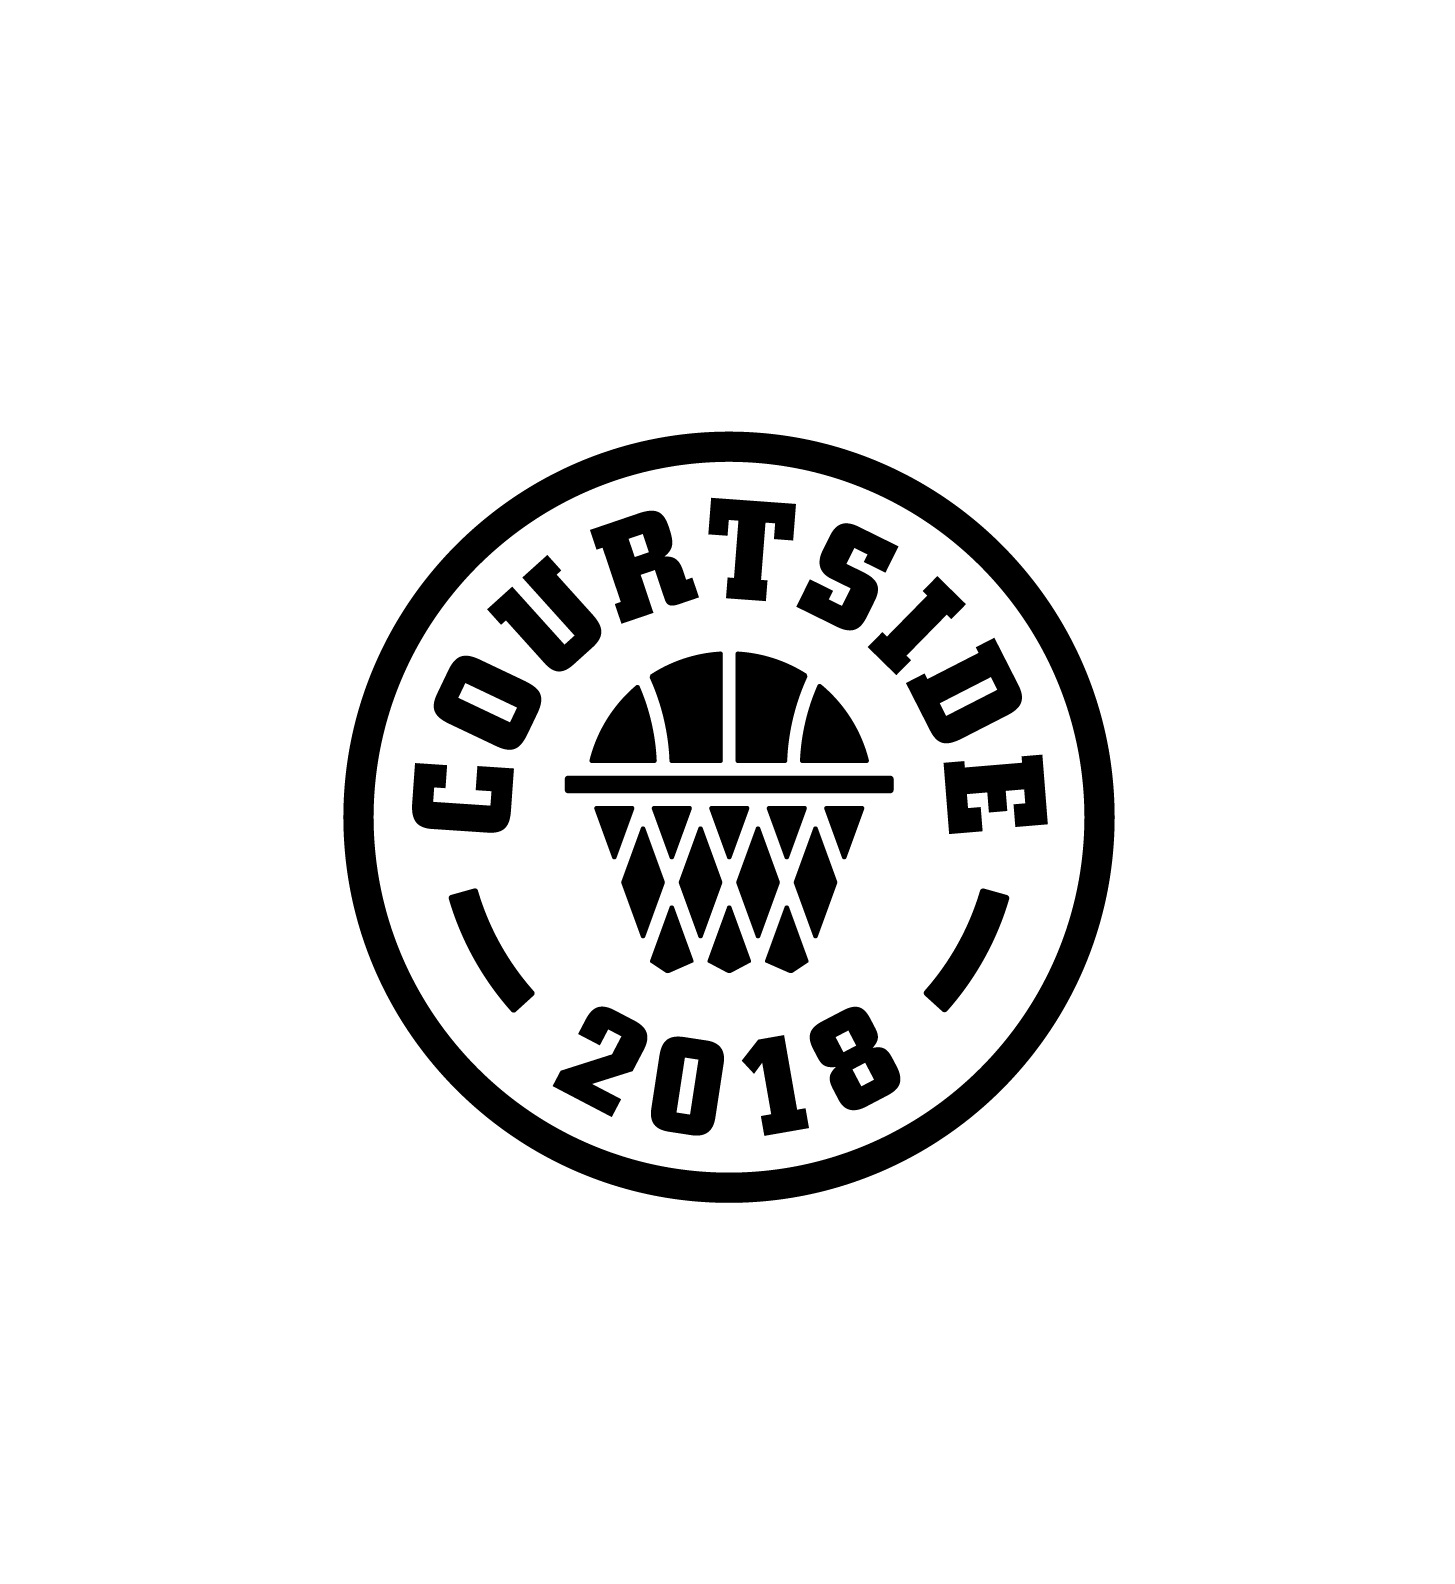 2018_Courtside_logo.jpg